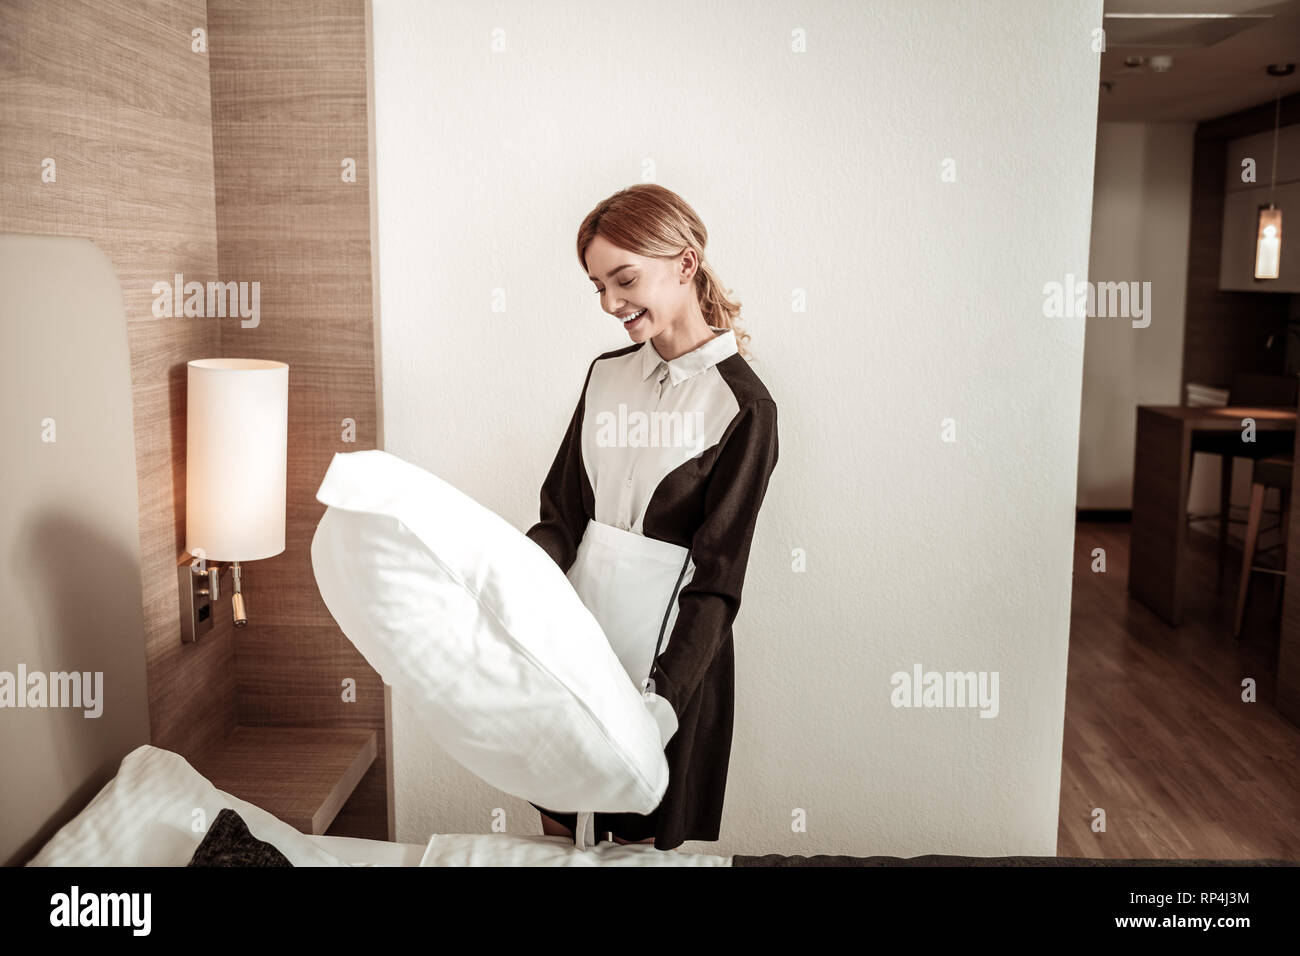 Cheerful hotel maid holding big comfy white pillow - Stock Image